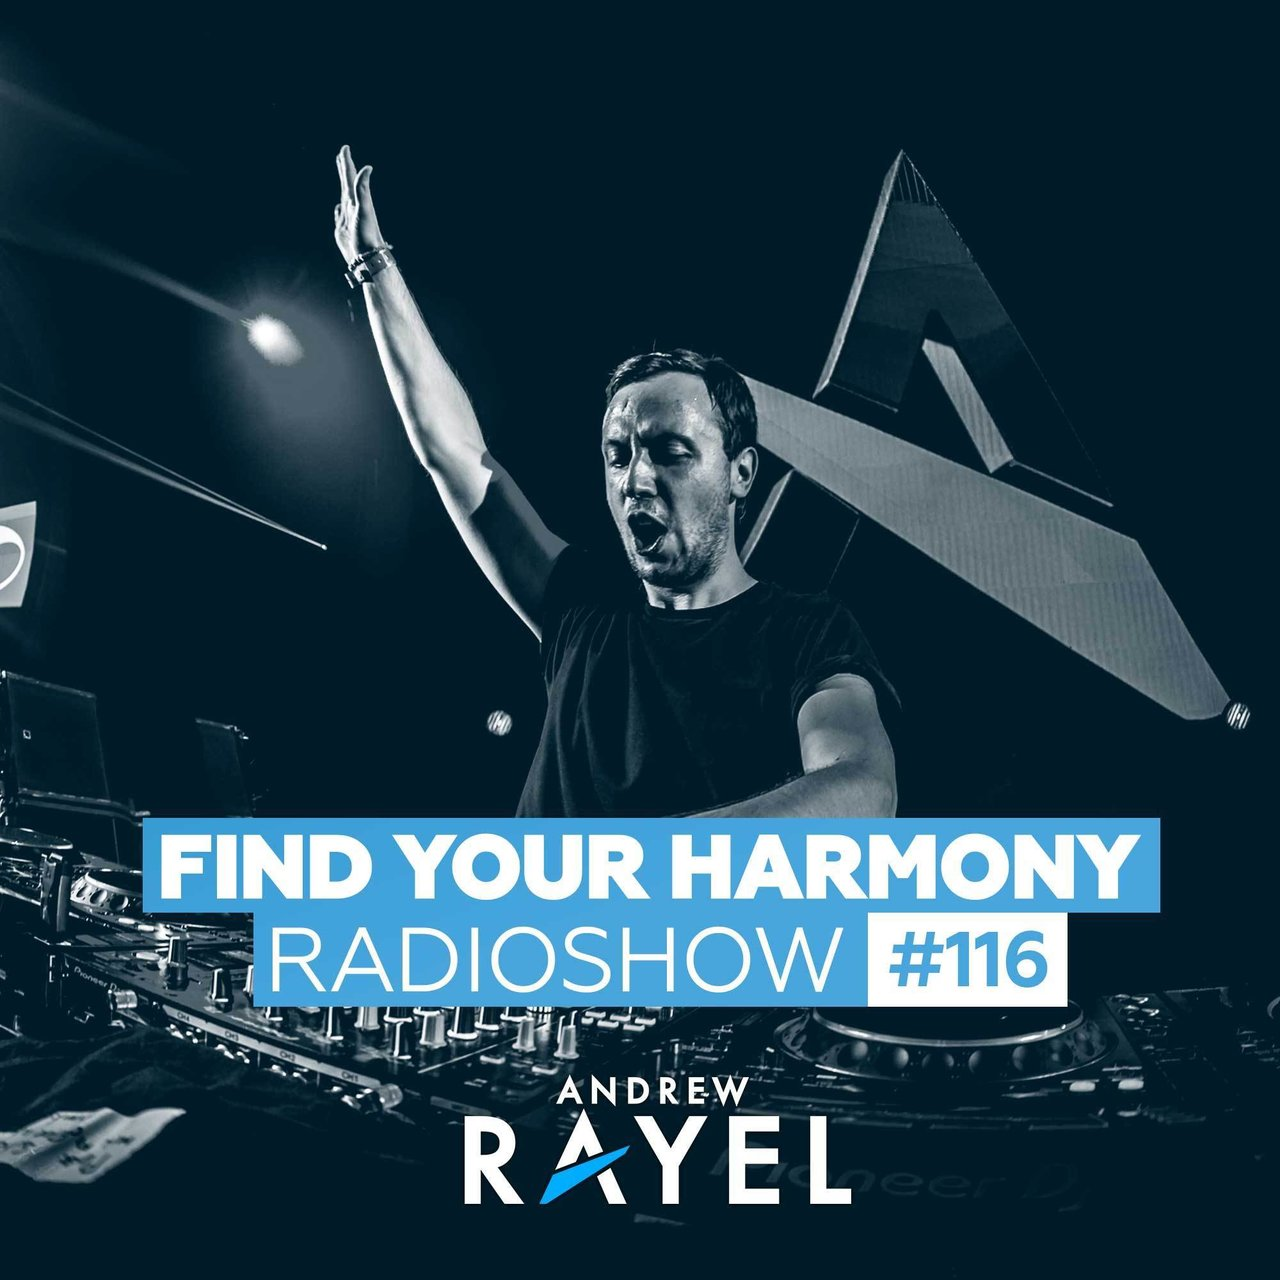 Find Your Harmony Radioshow #116